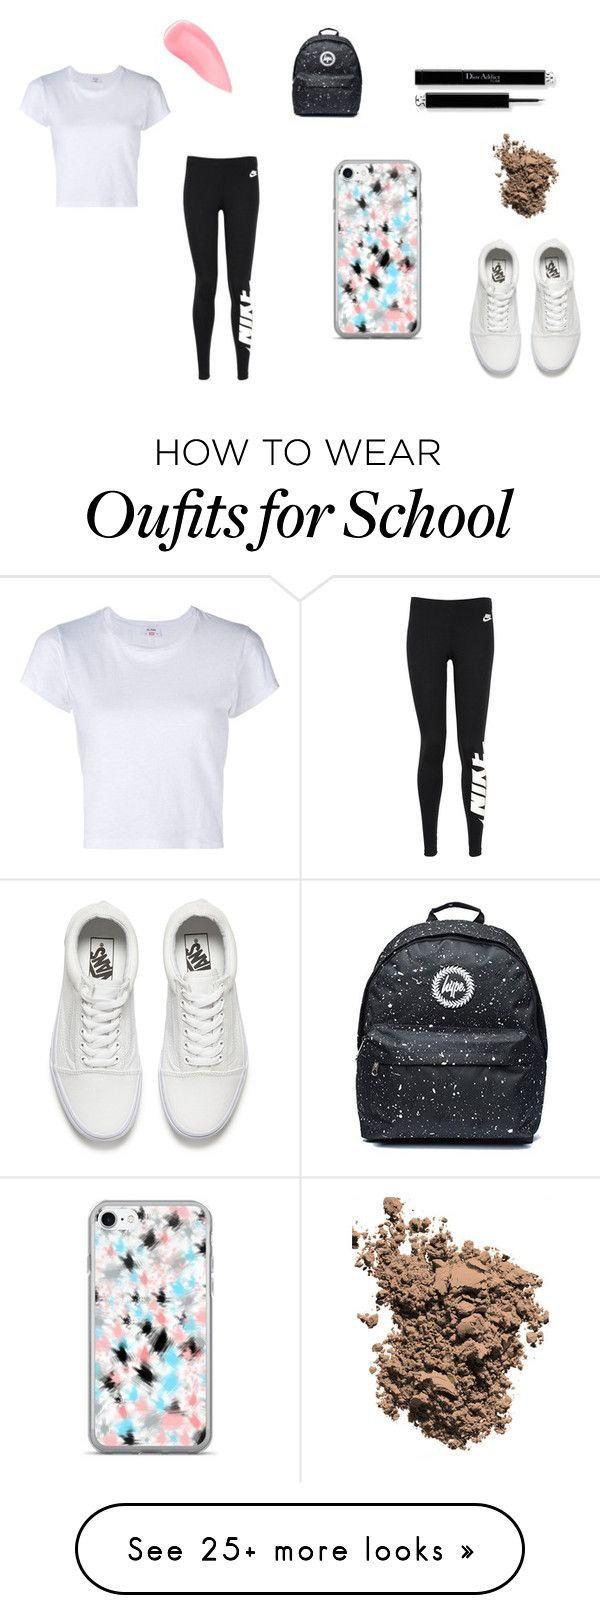 """Laurdiy inspired outfit"" by miniubb on Polyvore featuring RE/DONE, NIKE, Dolce&Gabbana, Kevyn Aucoin and Vans"